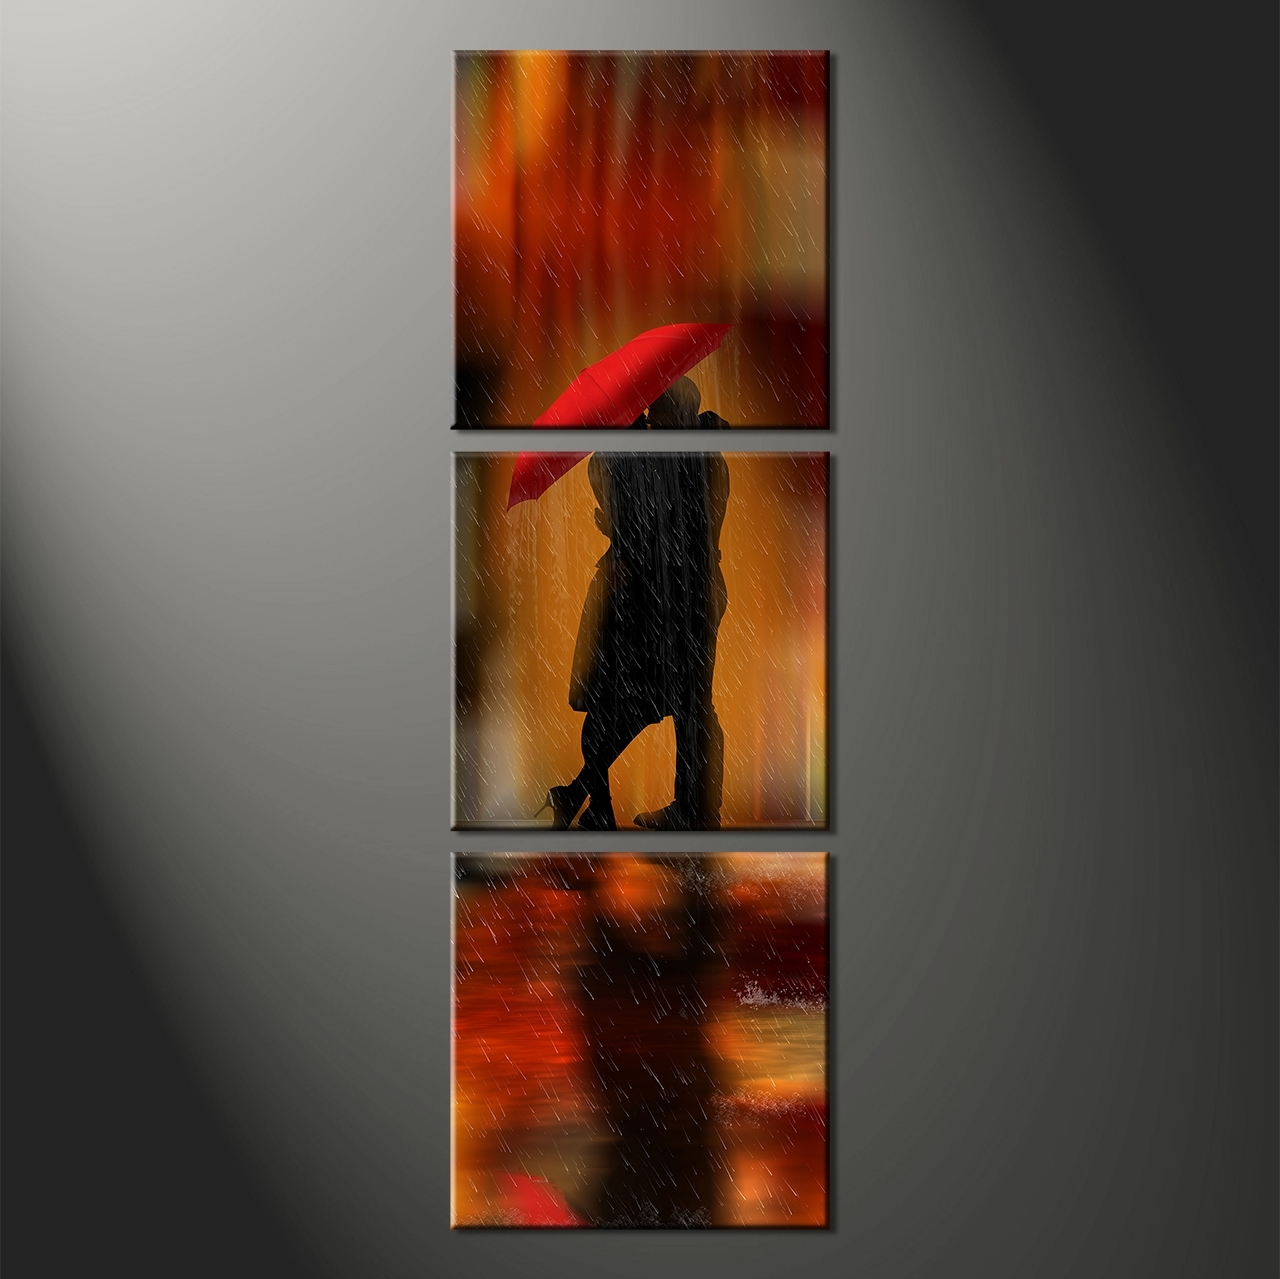 Long Vertical Wall Art In Fashionable Wall Art Designs: Vertical Wall Art Home Wall Decor 3 Piece Canvas (View 3 of 15)